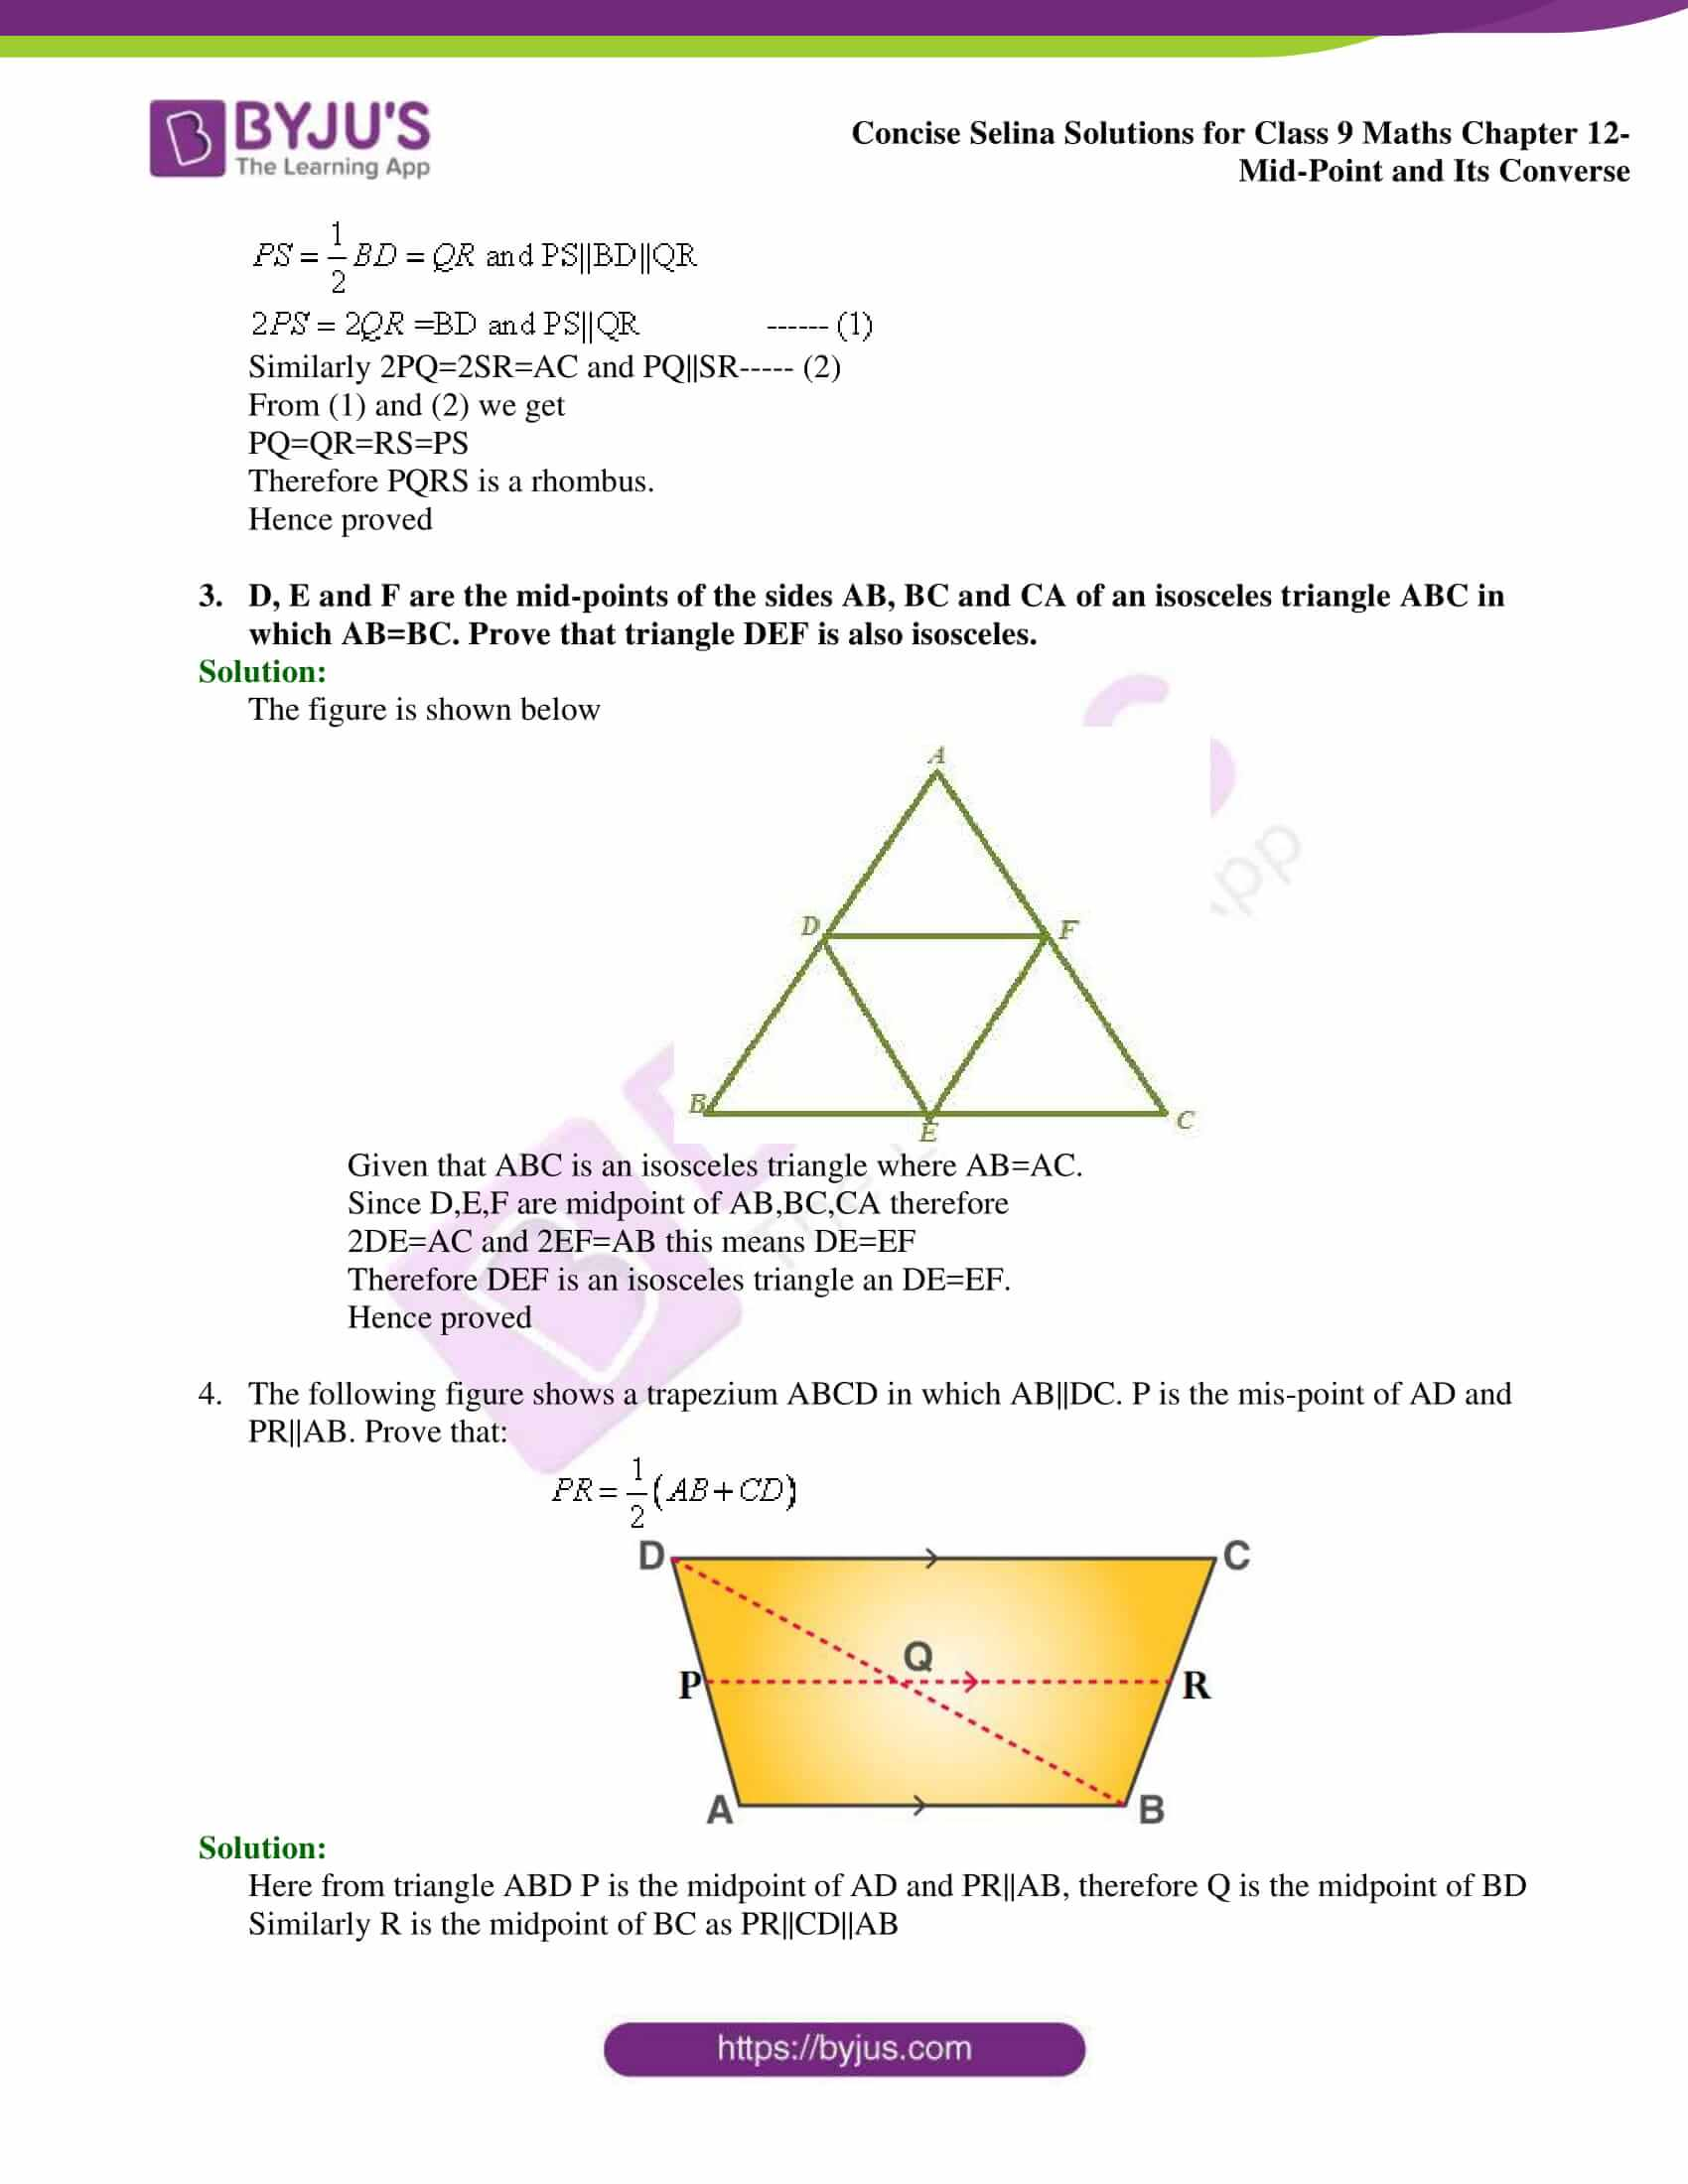 selina Solutions for Class 9 Maths Chapter 12 part 02